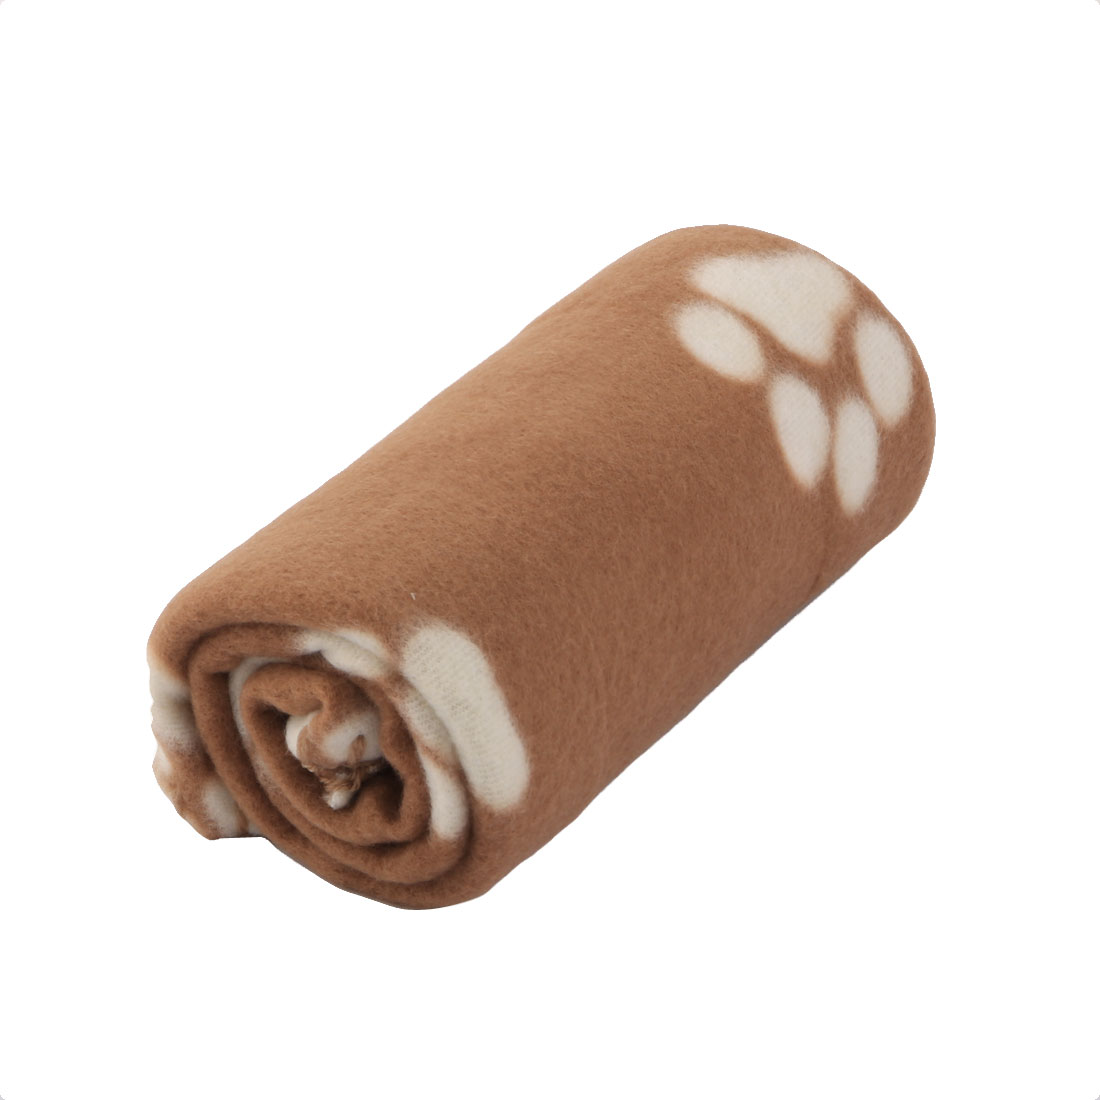 "Pet Fleece Blanket for Small Cats & Dogs 23.6"" x 27.6"", Coffee Color Paw"